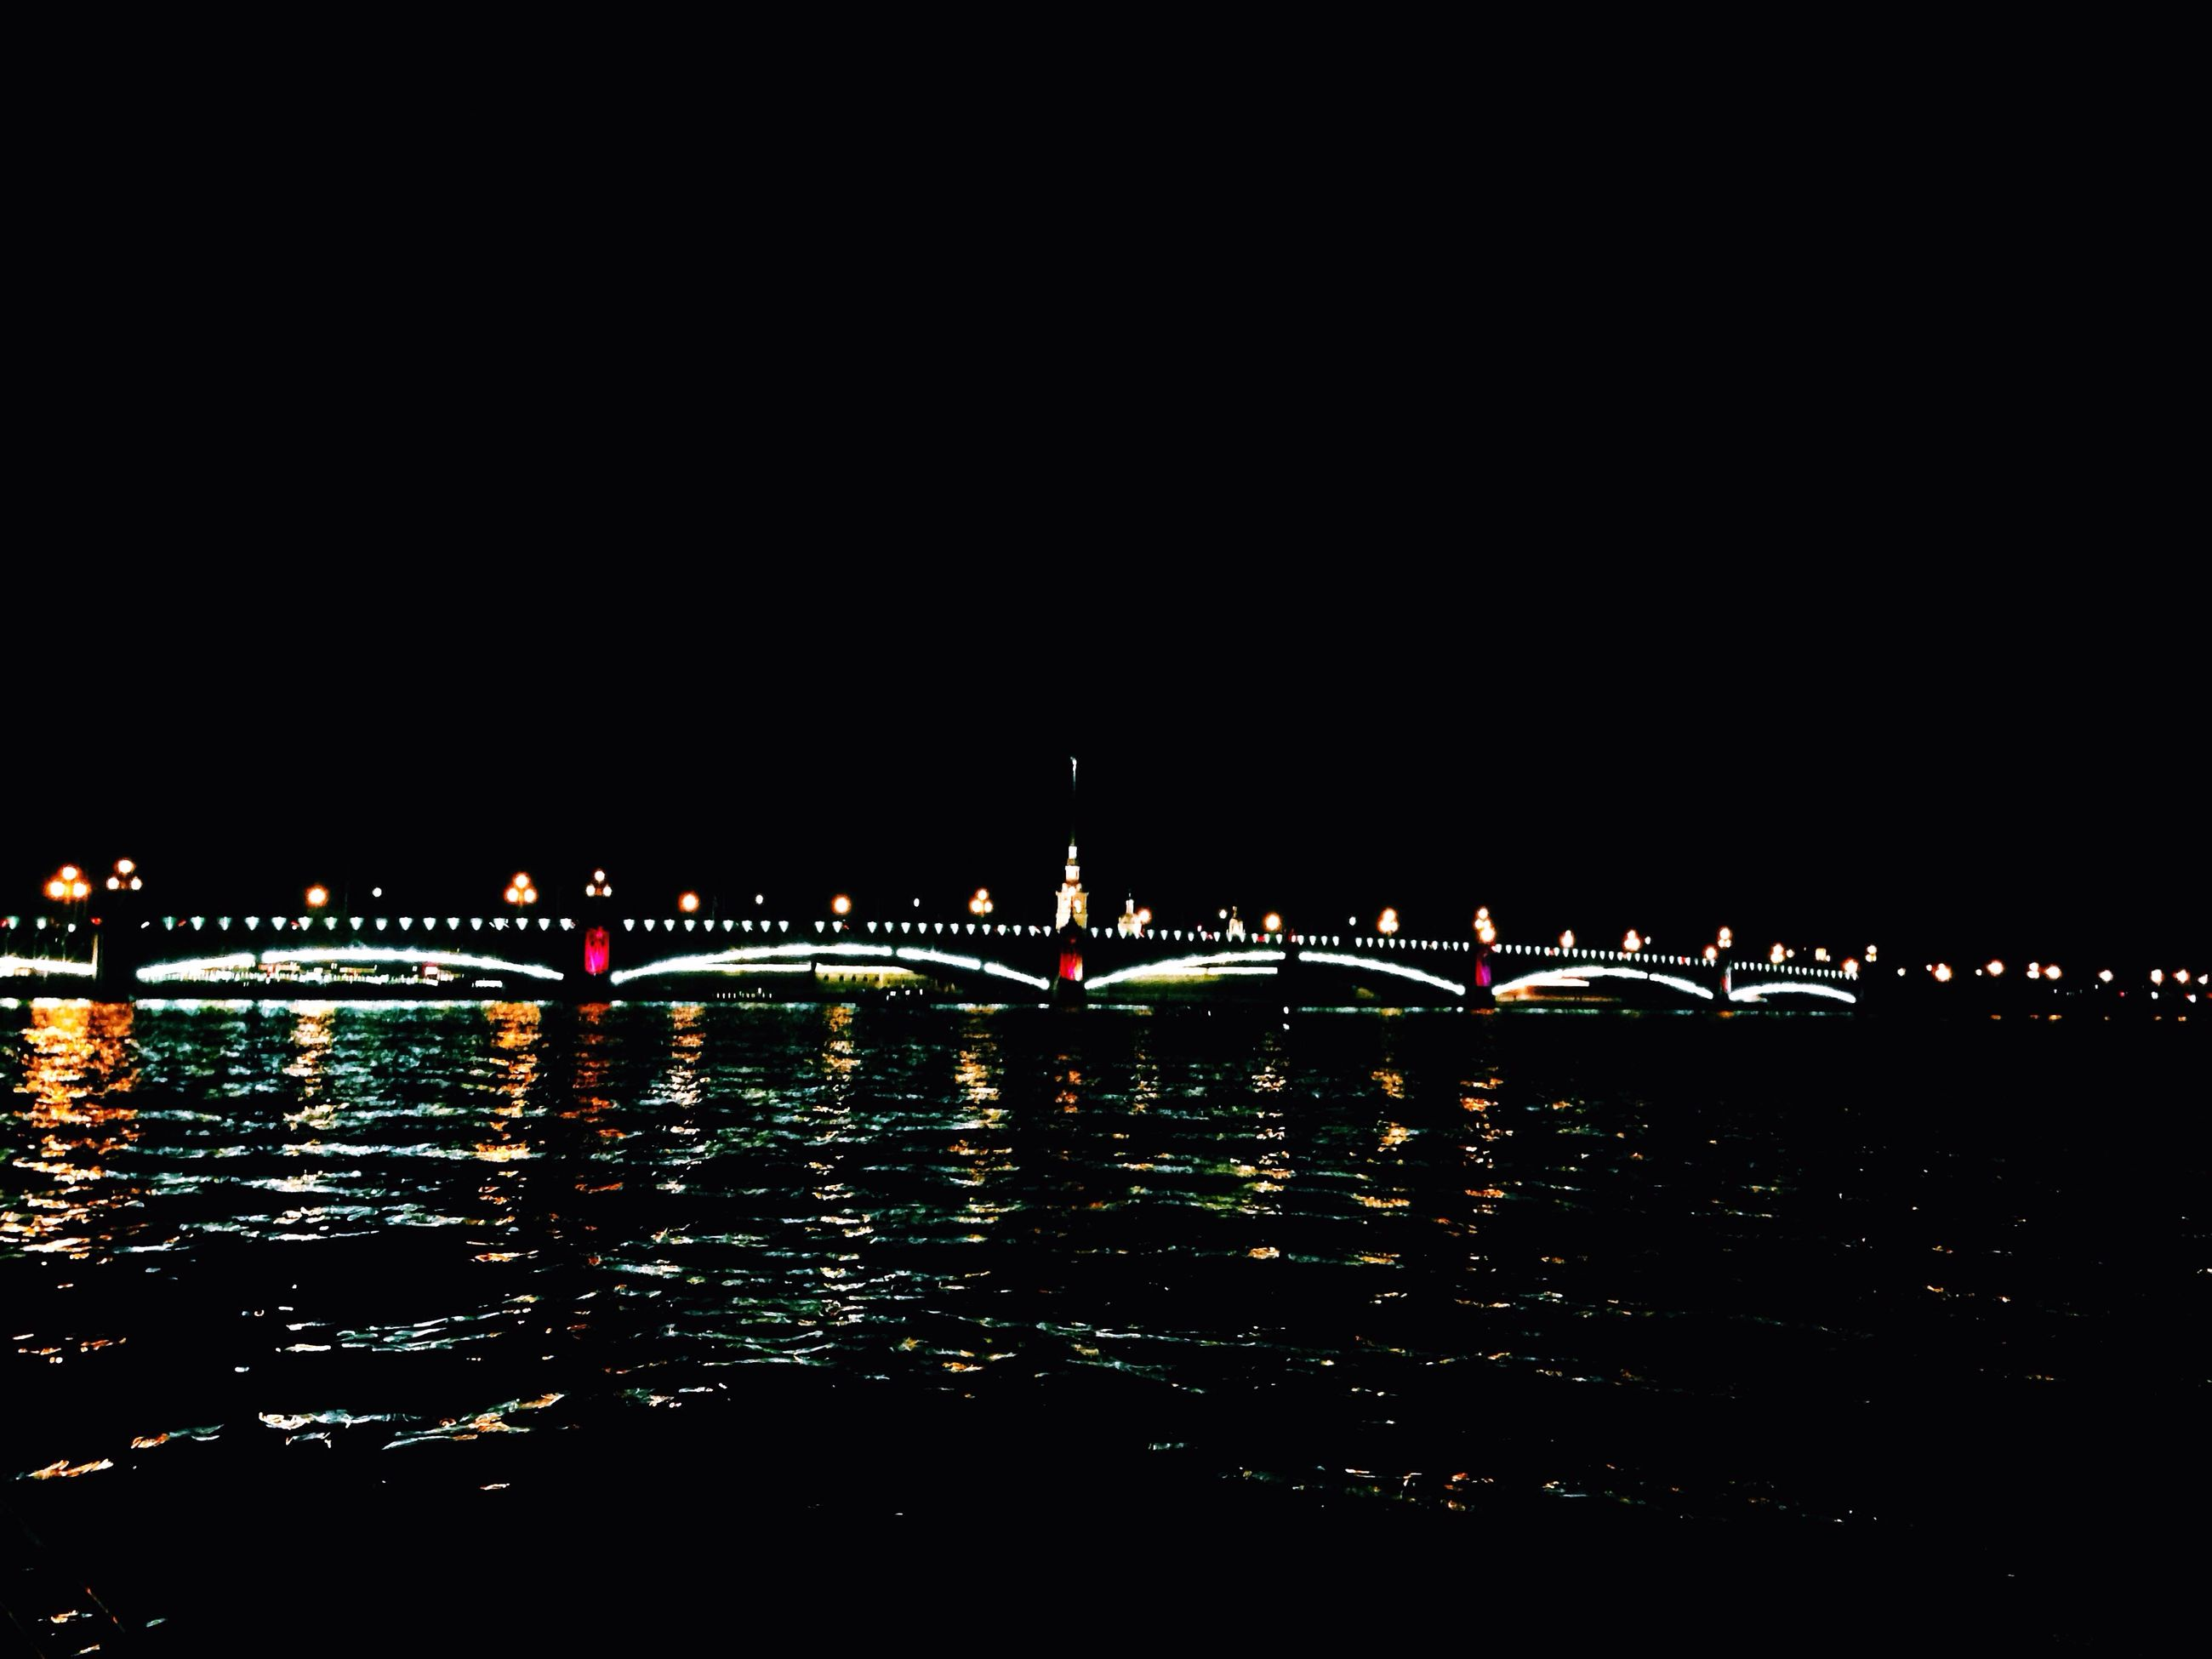 illuminated, night, copy space, clear sky, water, architecture, bridge - man made structure, built structure, connection, city, transportation, river, travel destinations, bridge, dark, lighting equipment, travel, engineering, building exterior, outdoors